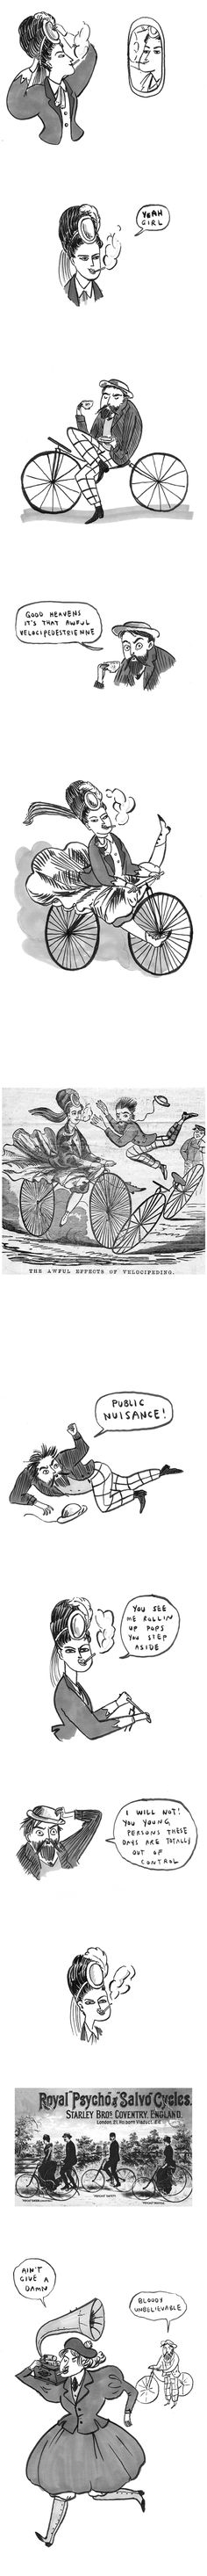 velocipede - I love Kate Beaton. And I love this comic especially. I wish she made prints of it.